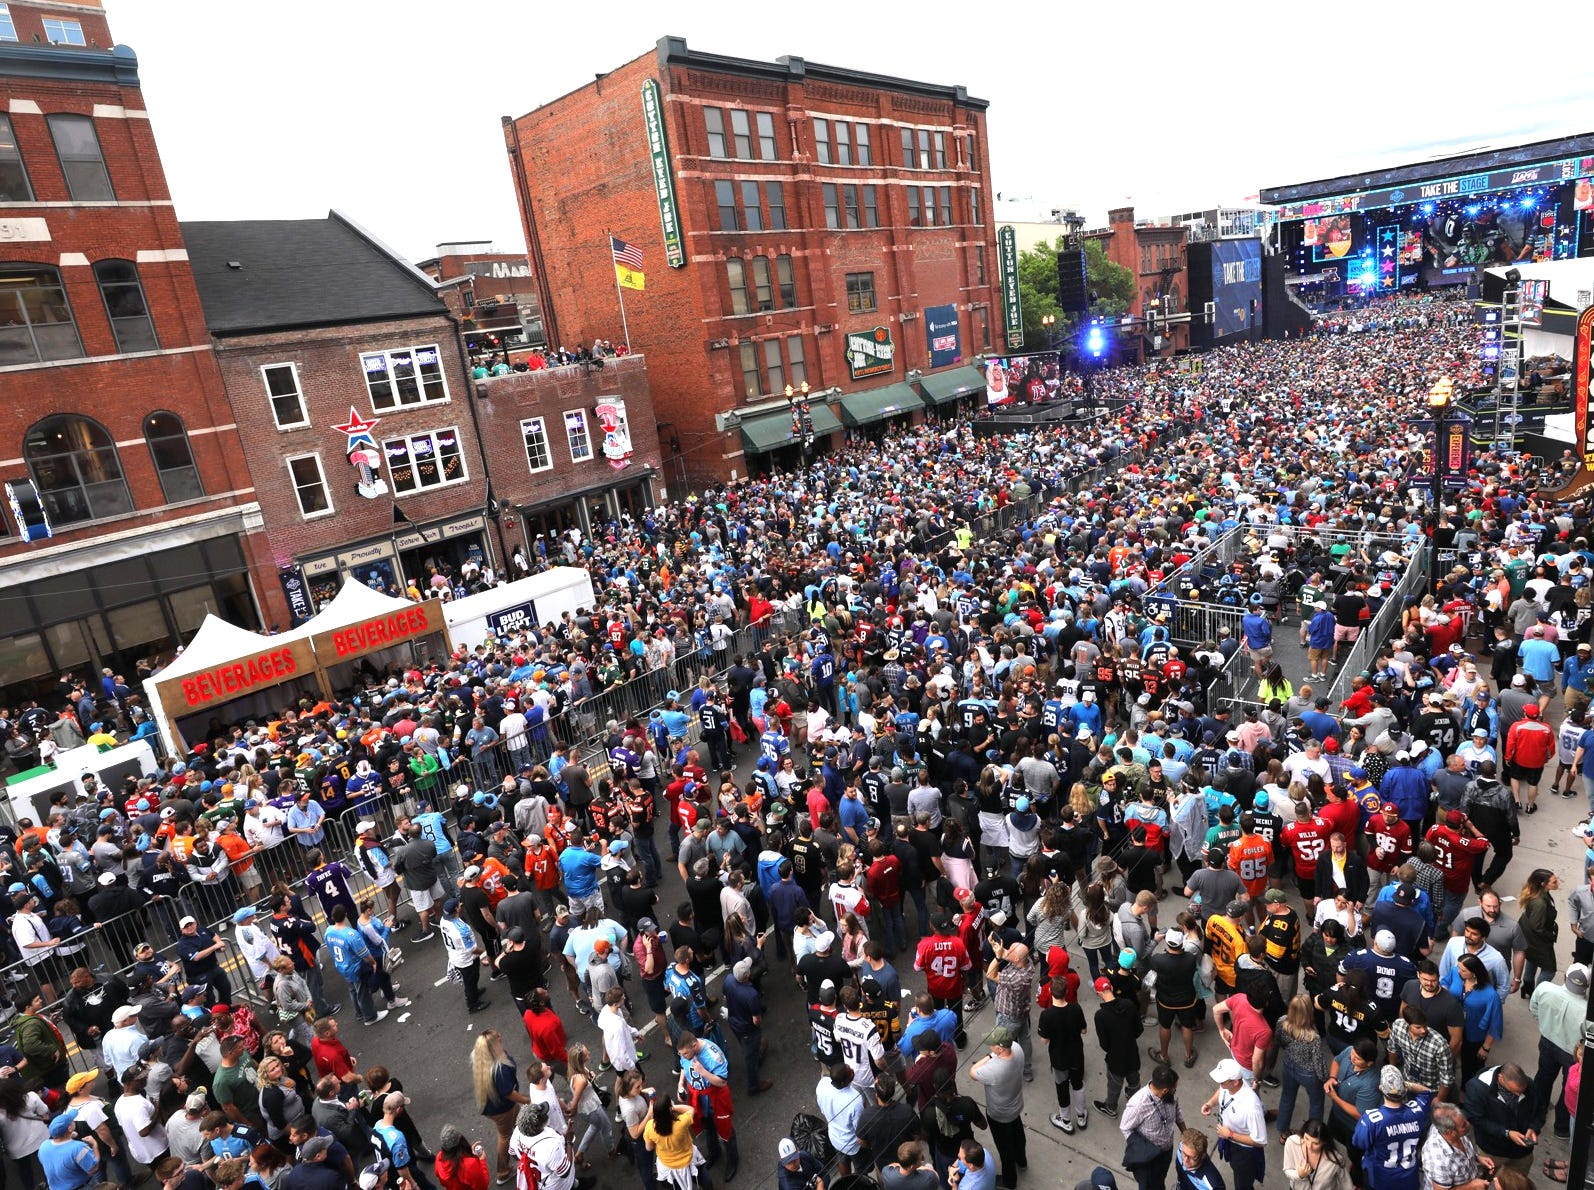 Broadway is filled in this view from the Pinnacle Bank rooftop party on top of Kid Rock's honky tonk before the start of the first round of the NFL Draft Thursday, April 25, 2019, in Nashville, Tenn.